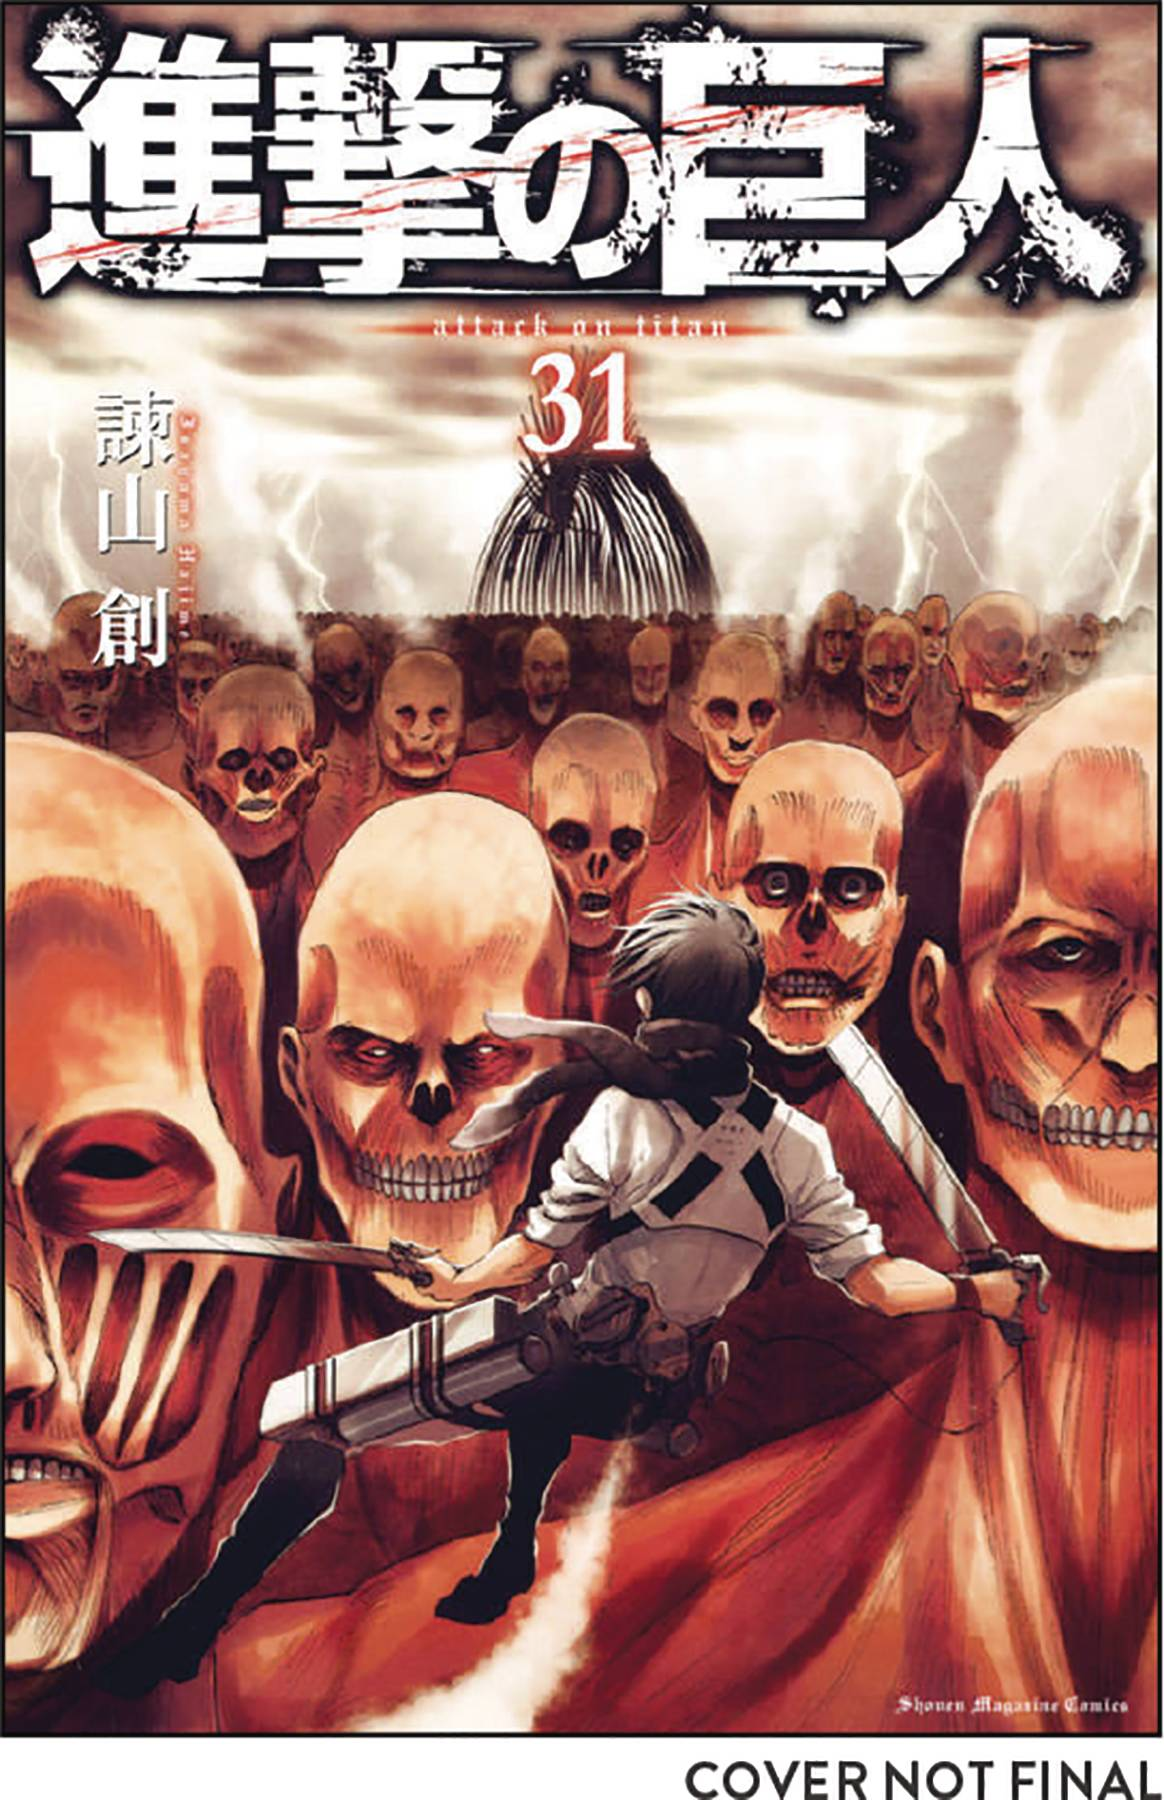 ATTACK ON TITAN GN 31